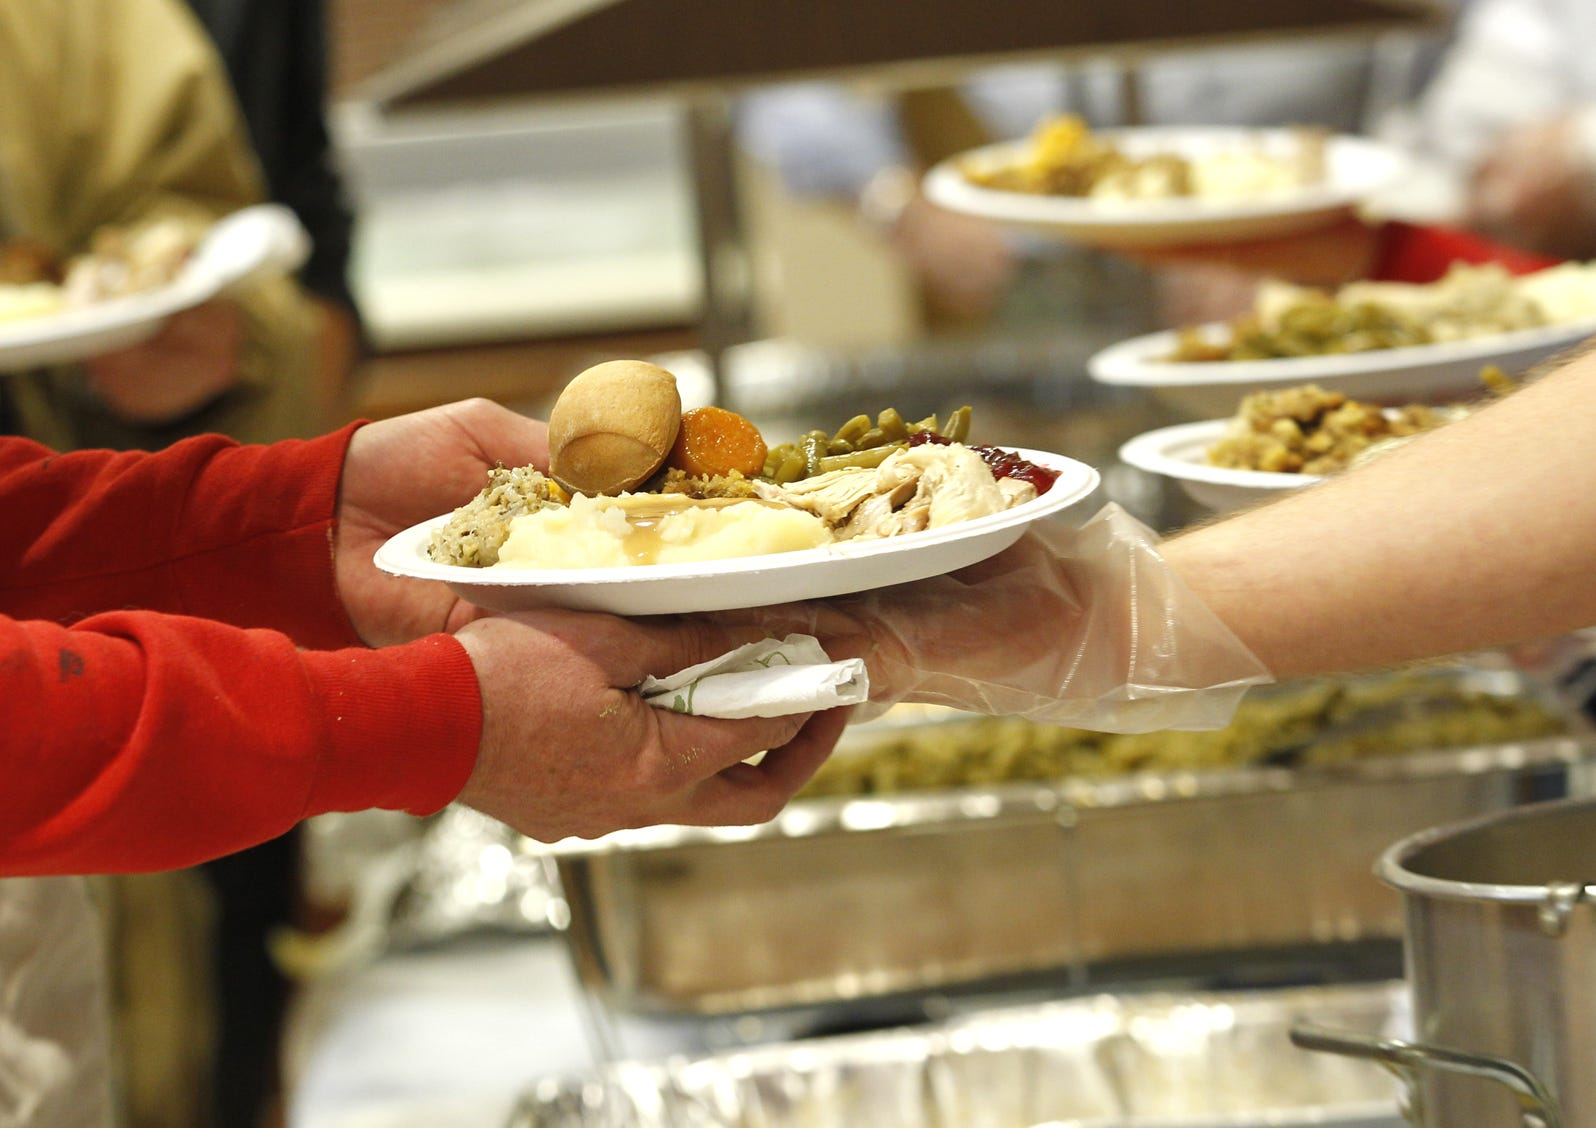 A guest receives a plate loaded with hot, delicious food during Lafayette Urban Ministry's Community Thanksgiving Celebration Thursday, November 22, 2012, at Central Presbyterian Church in Lafayette.